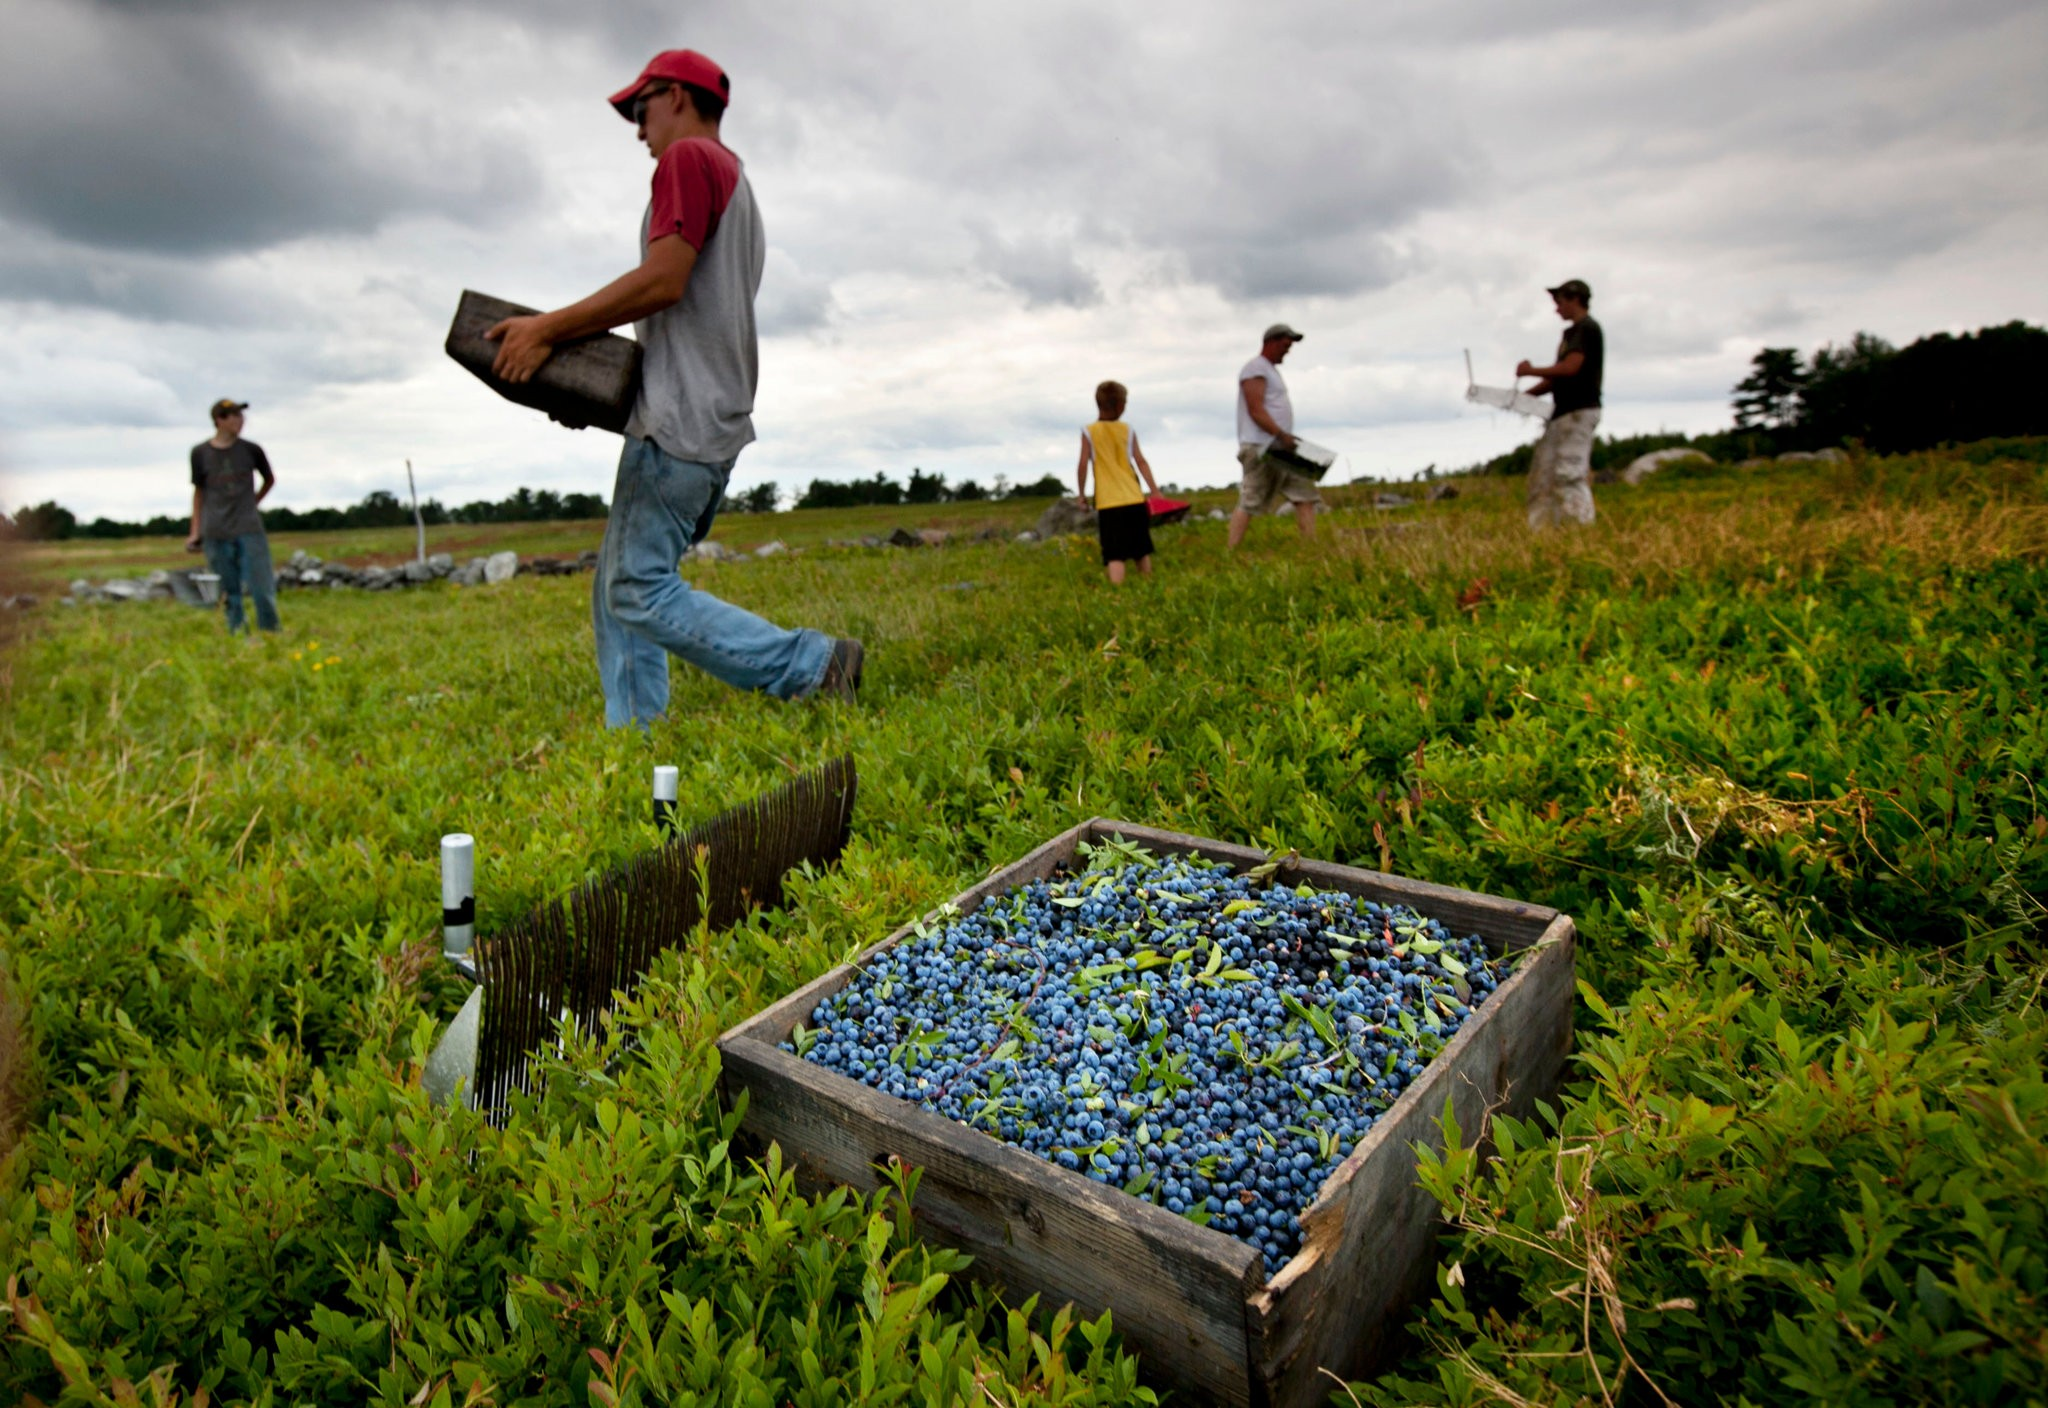 Erratic weather is a threat to the wild blueberry crop in Maine, where some fields are a century old.CreditRobert F. Bukaty/Associated Press